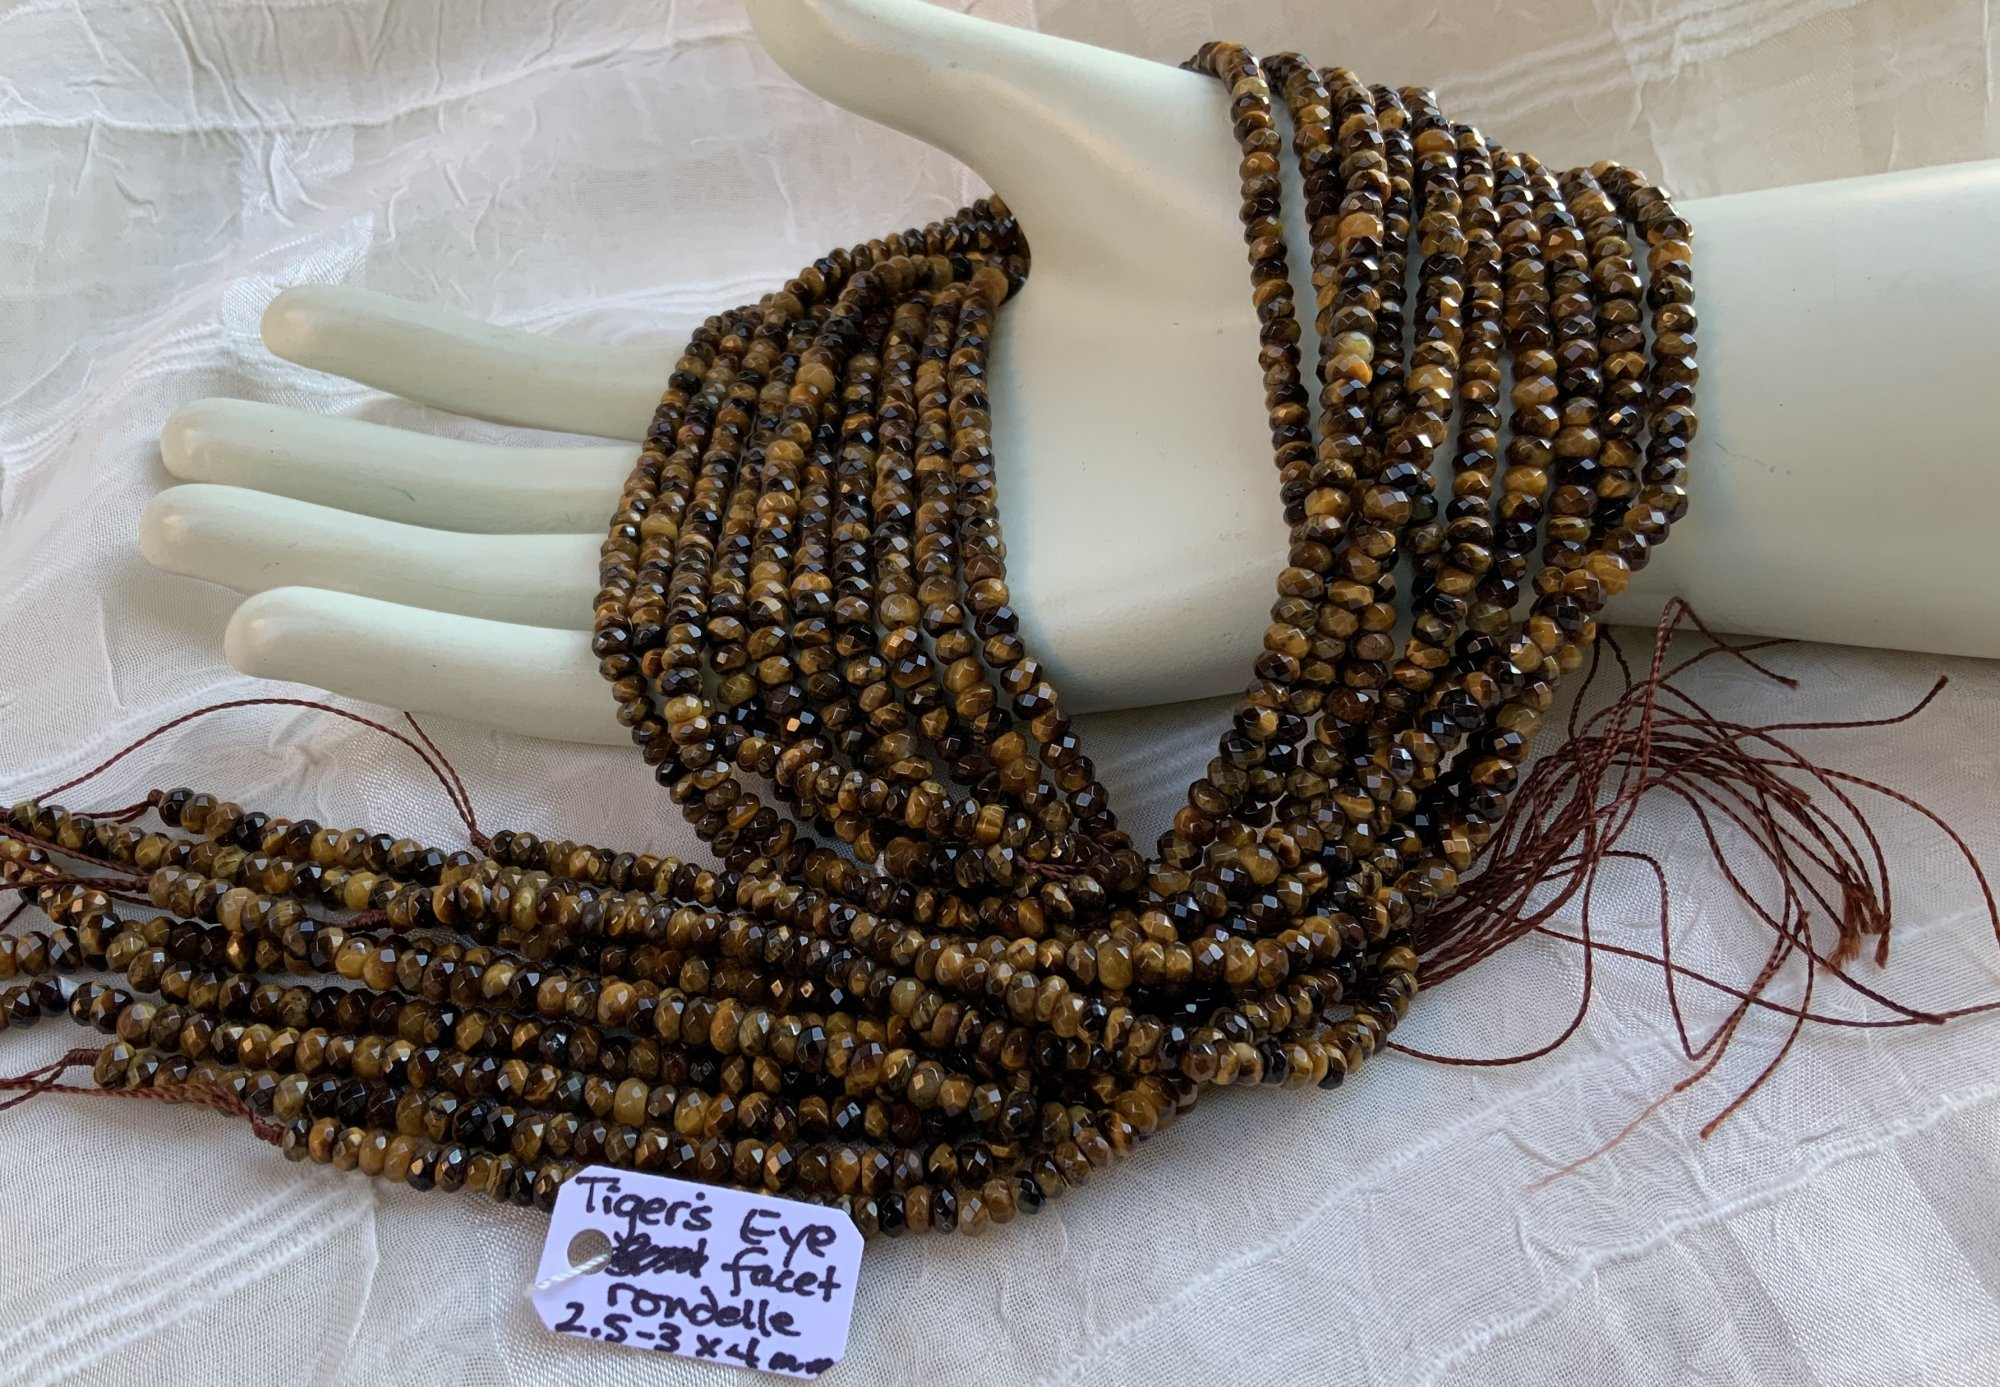 Tiger's Eye 2.5-3x4mm Faceted Rondel